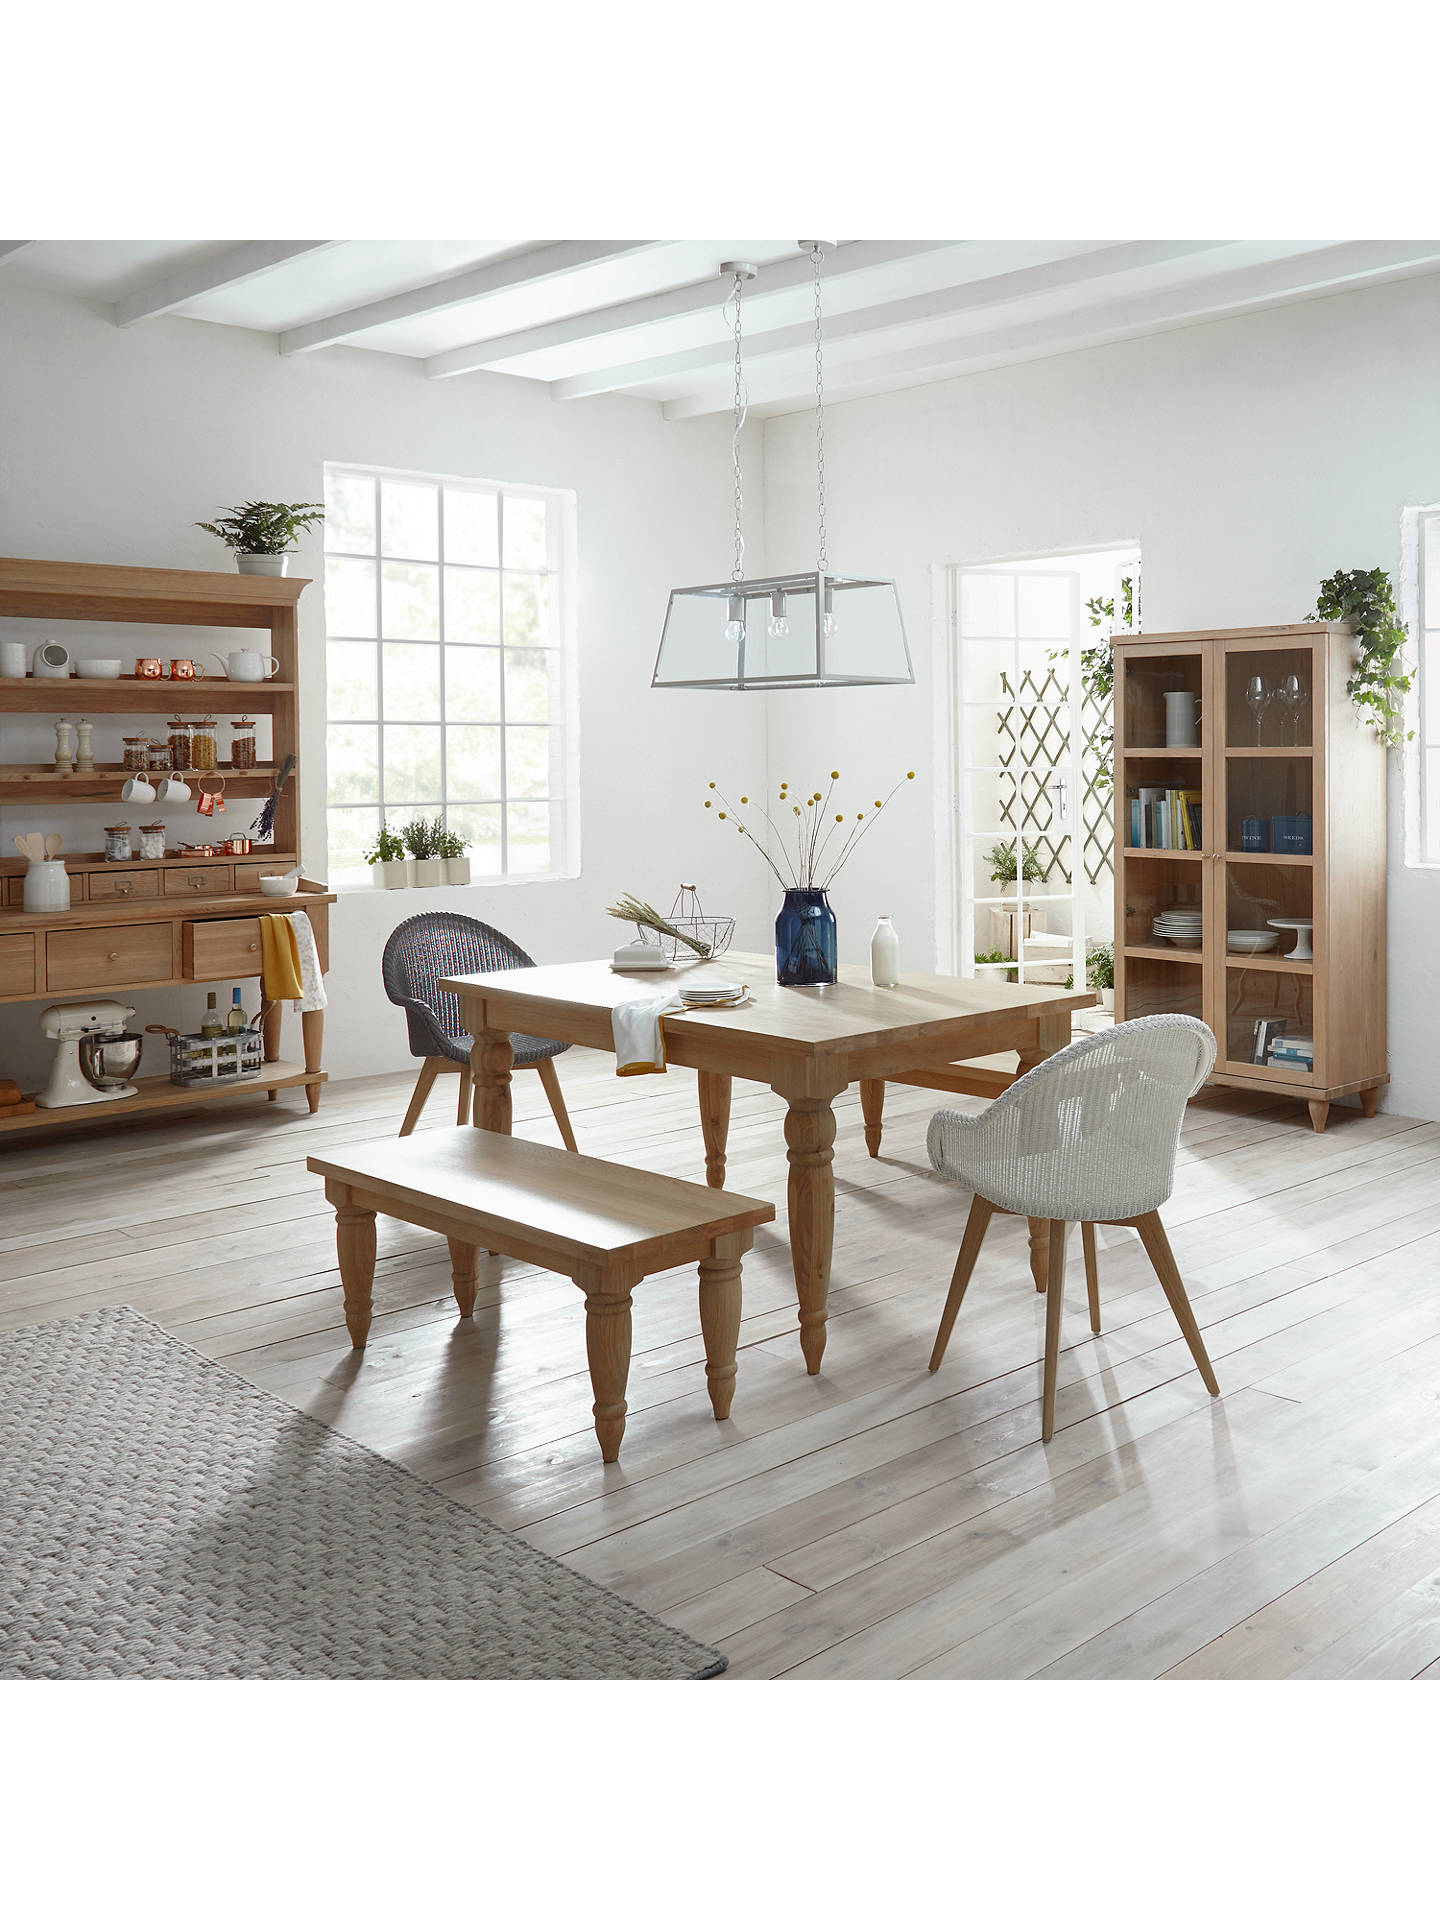 Buy Croft Collection Easdale Lloyd Loom Dining Chair, Off White Online at johnlewis.com